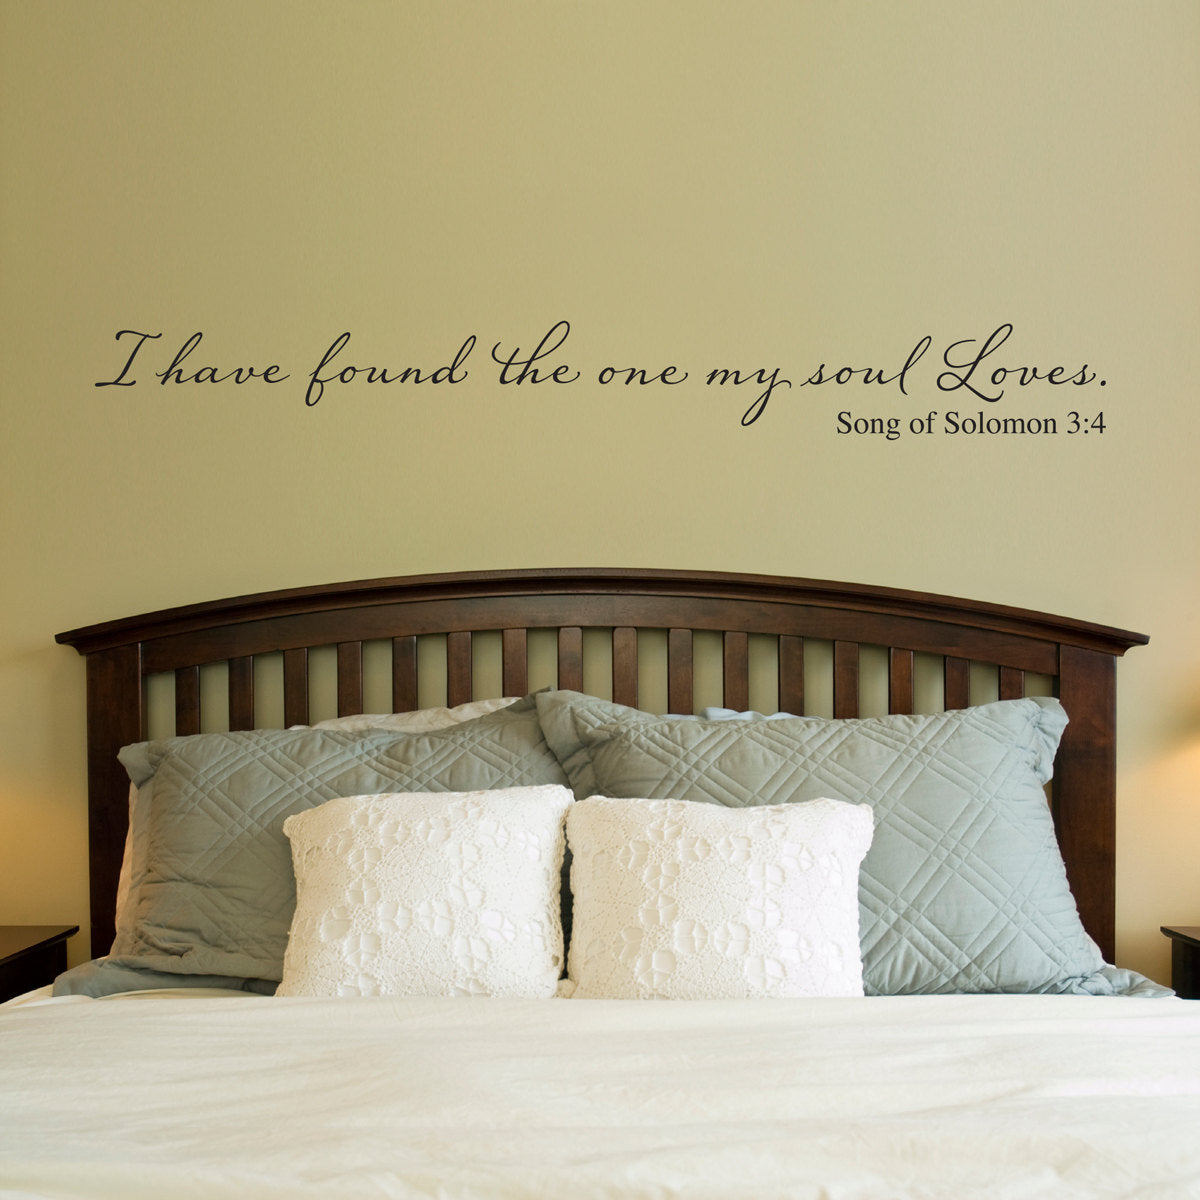 Wall Decals - Phrases and Quotes Page 3 - Stephen Edward Graphics